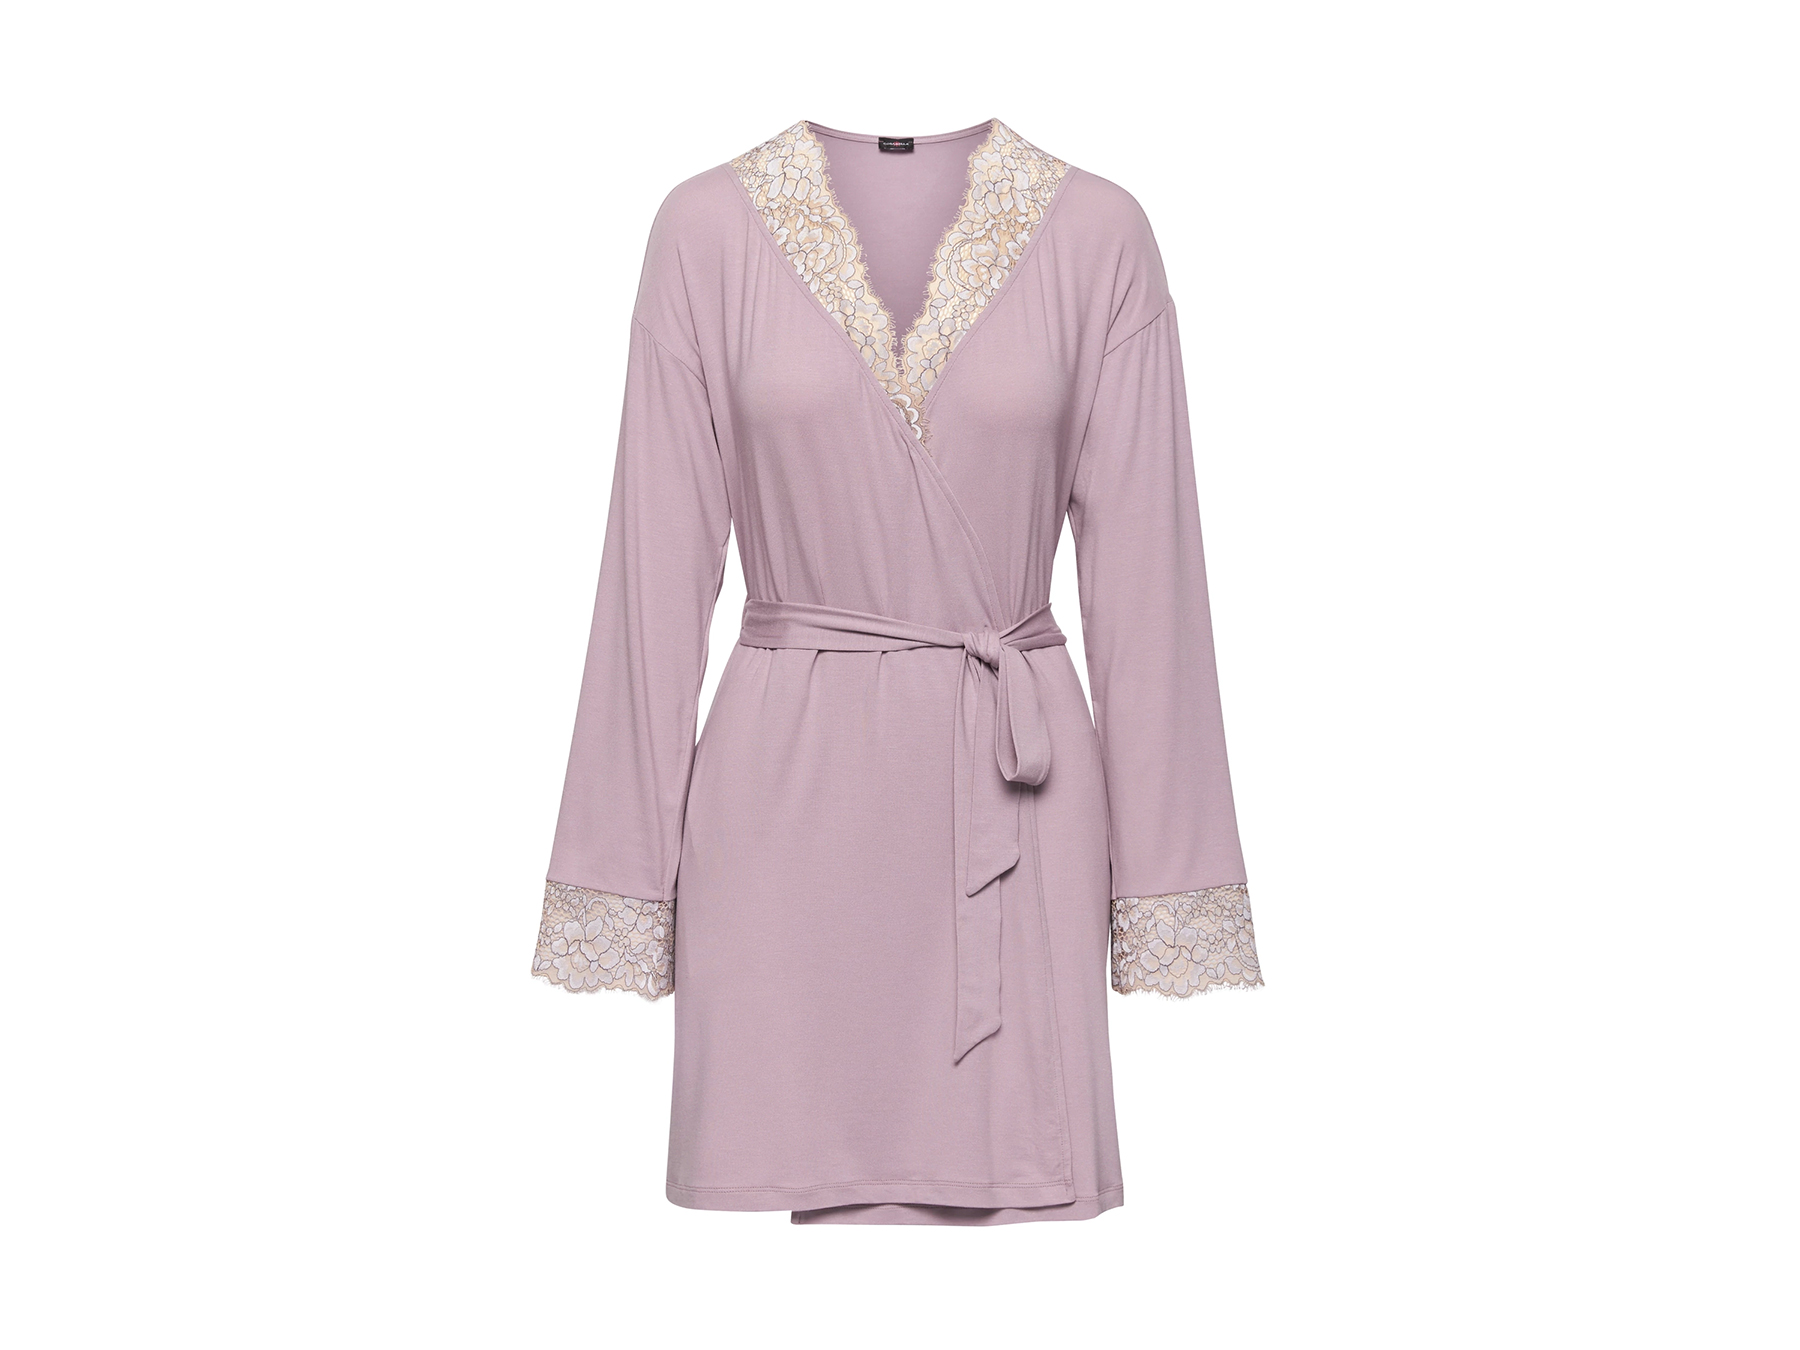 Cosabella | Pret-a-Porter Robe (The Coziest Clothes For Staying In)